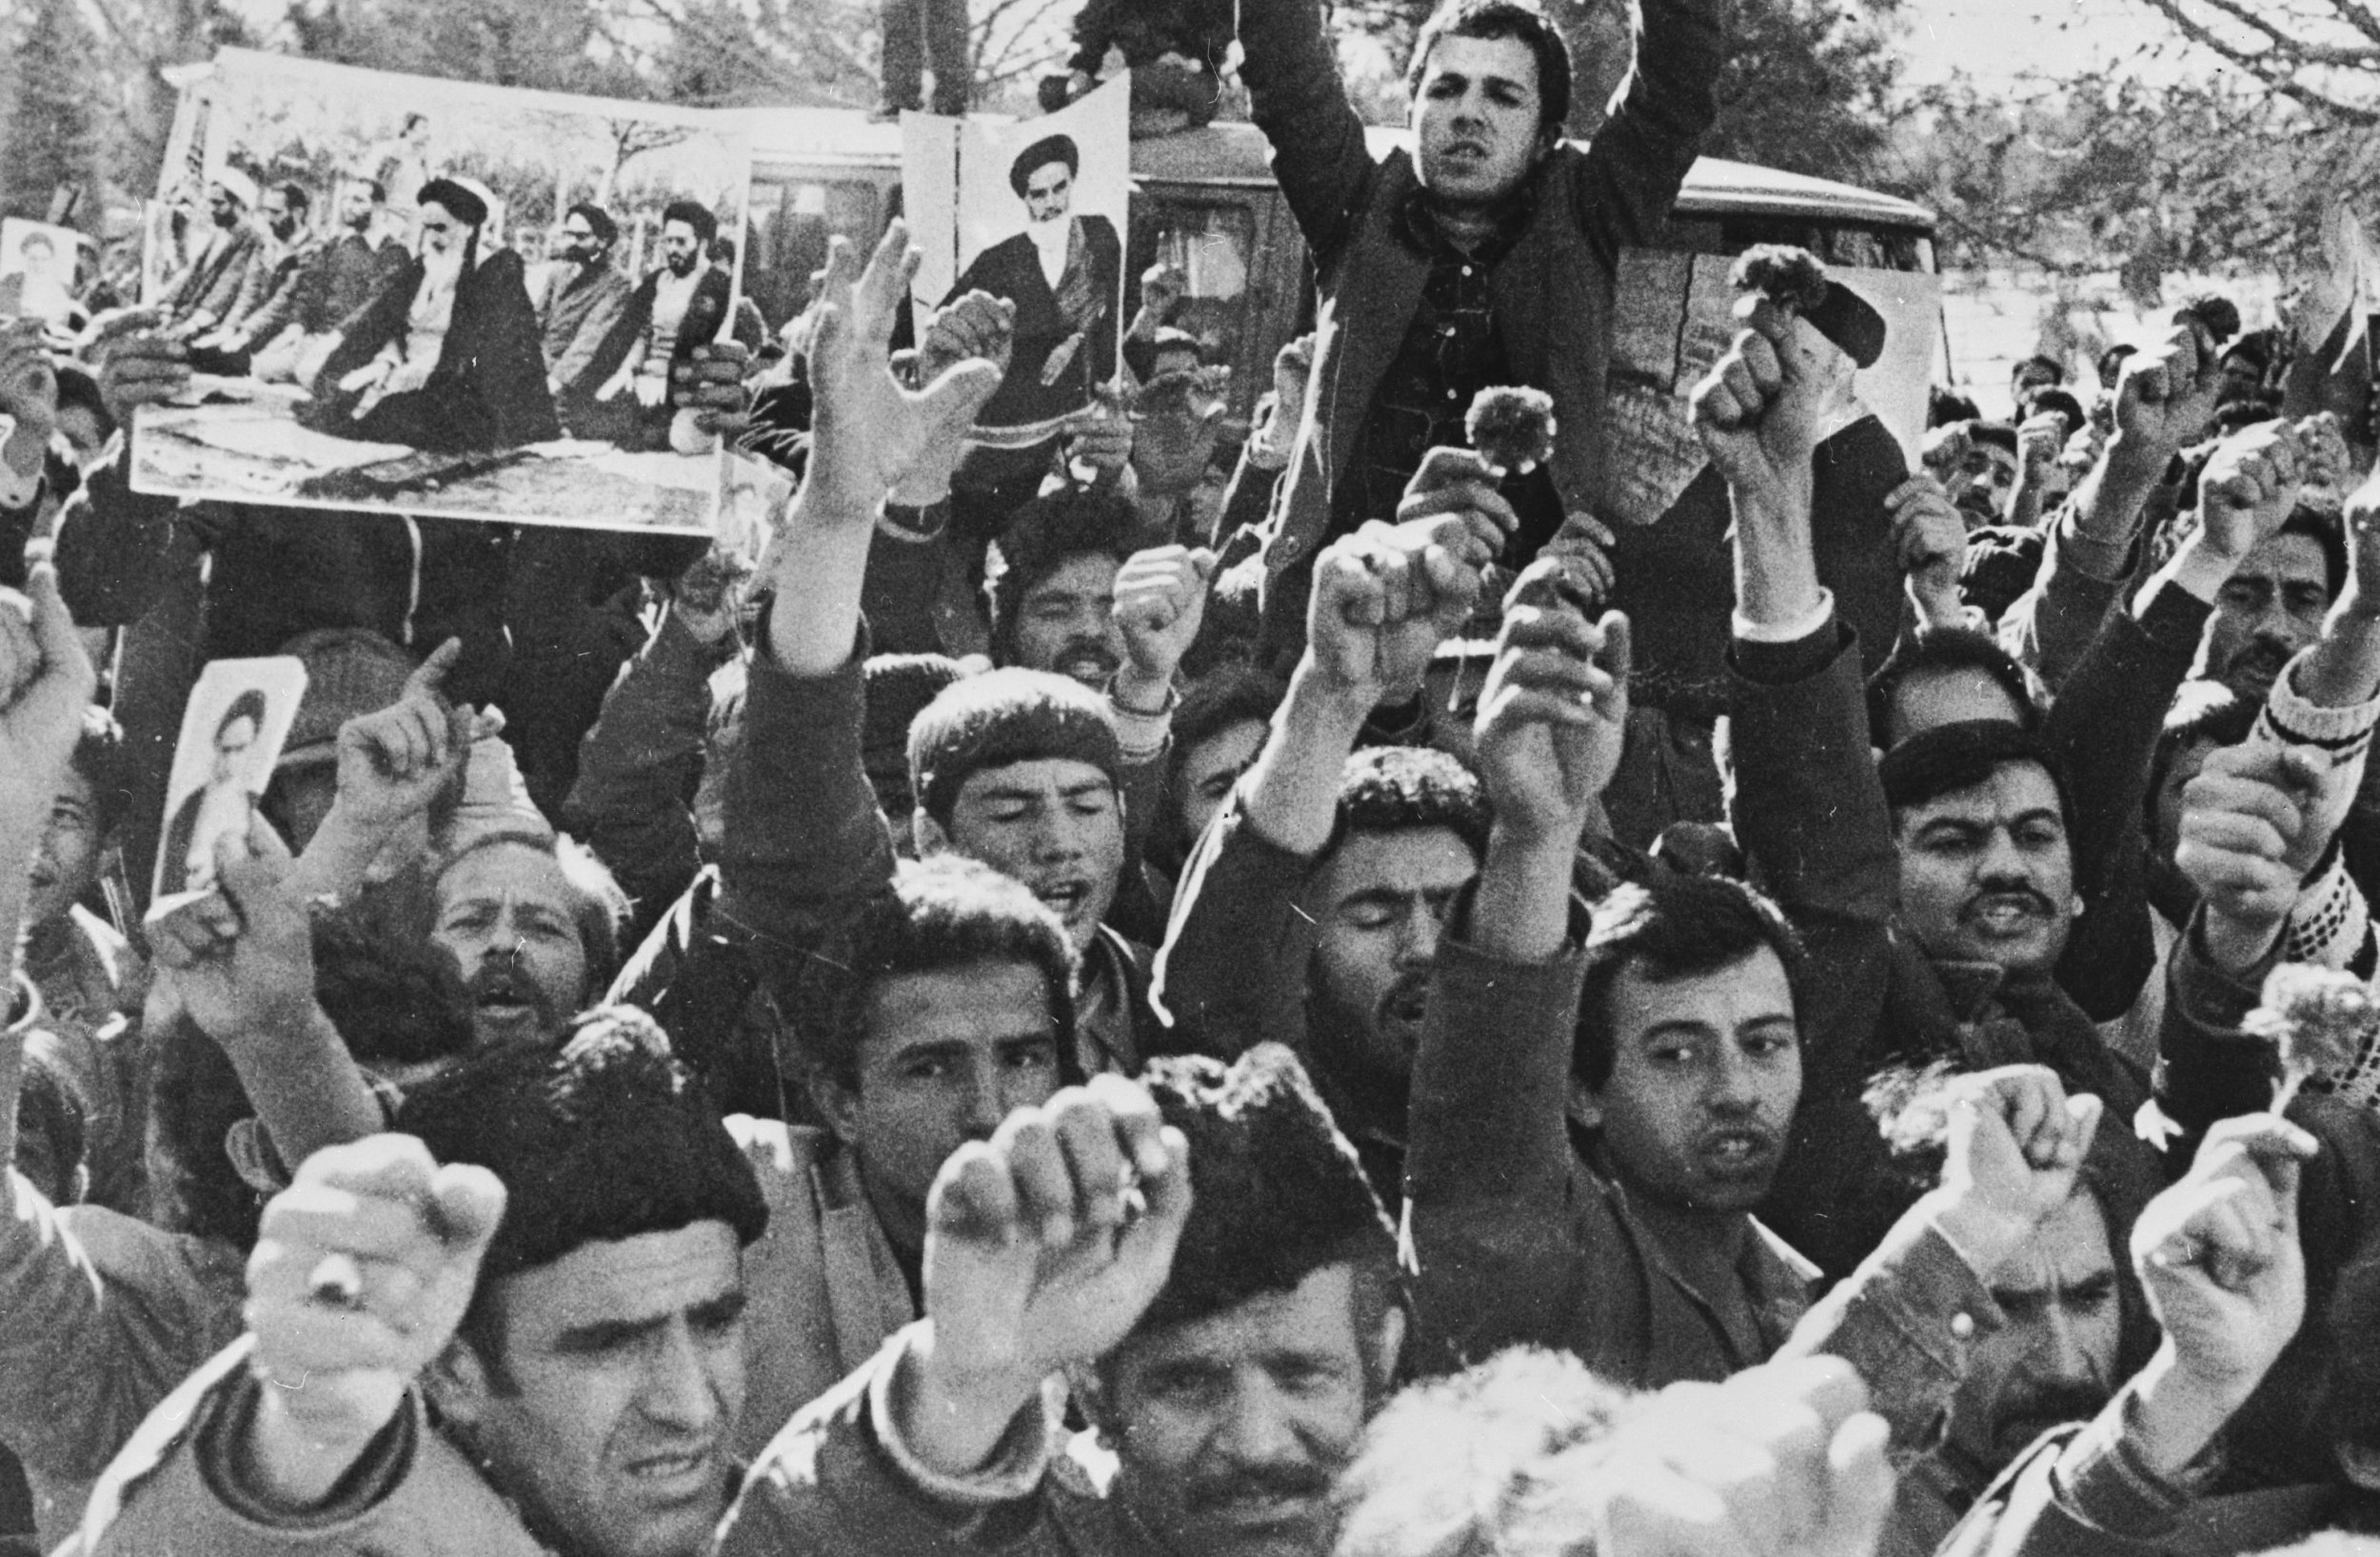 a history of the iranian revolution in 1979 The iranian revolution was the revolution that happened in iran in 1979 and ended the monarchy and led to foundation of islamic republic of iran.